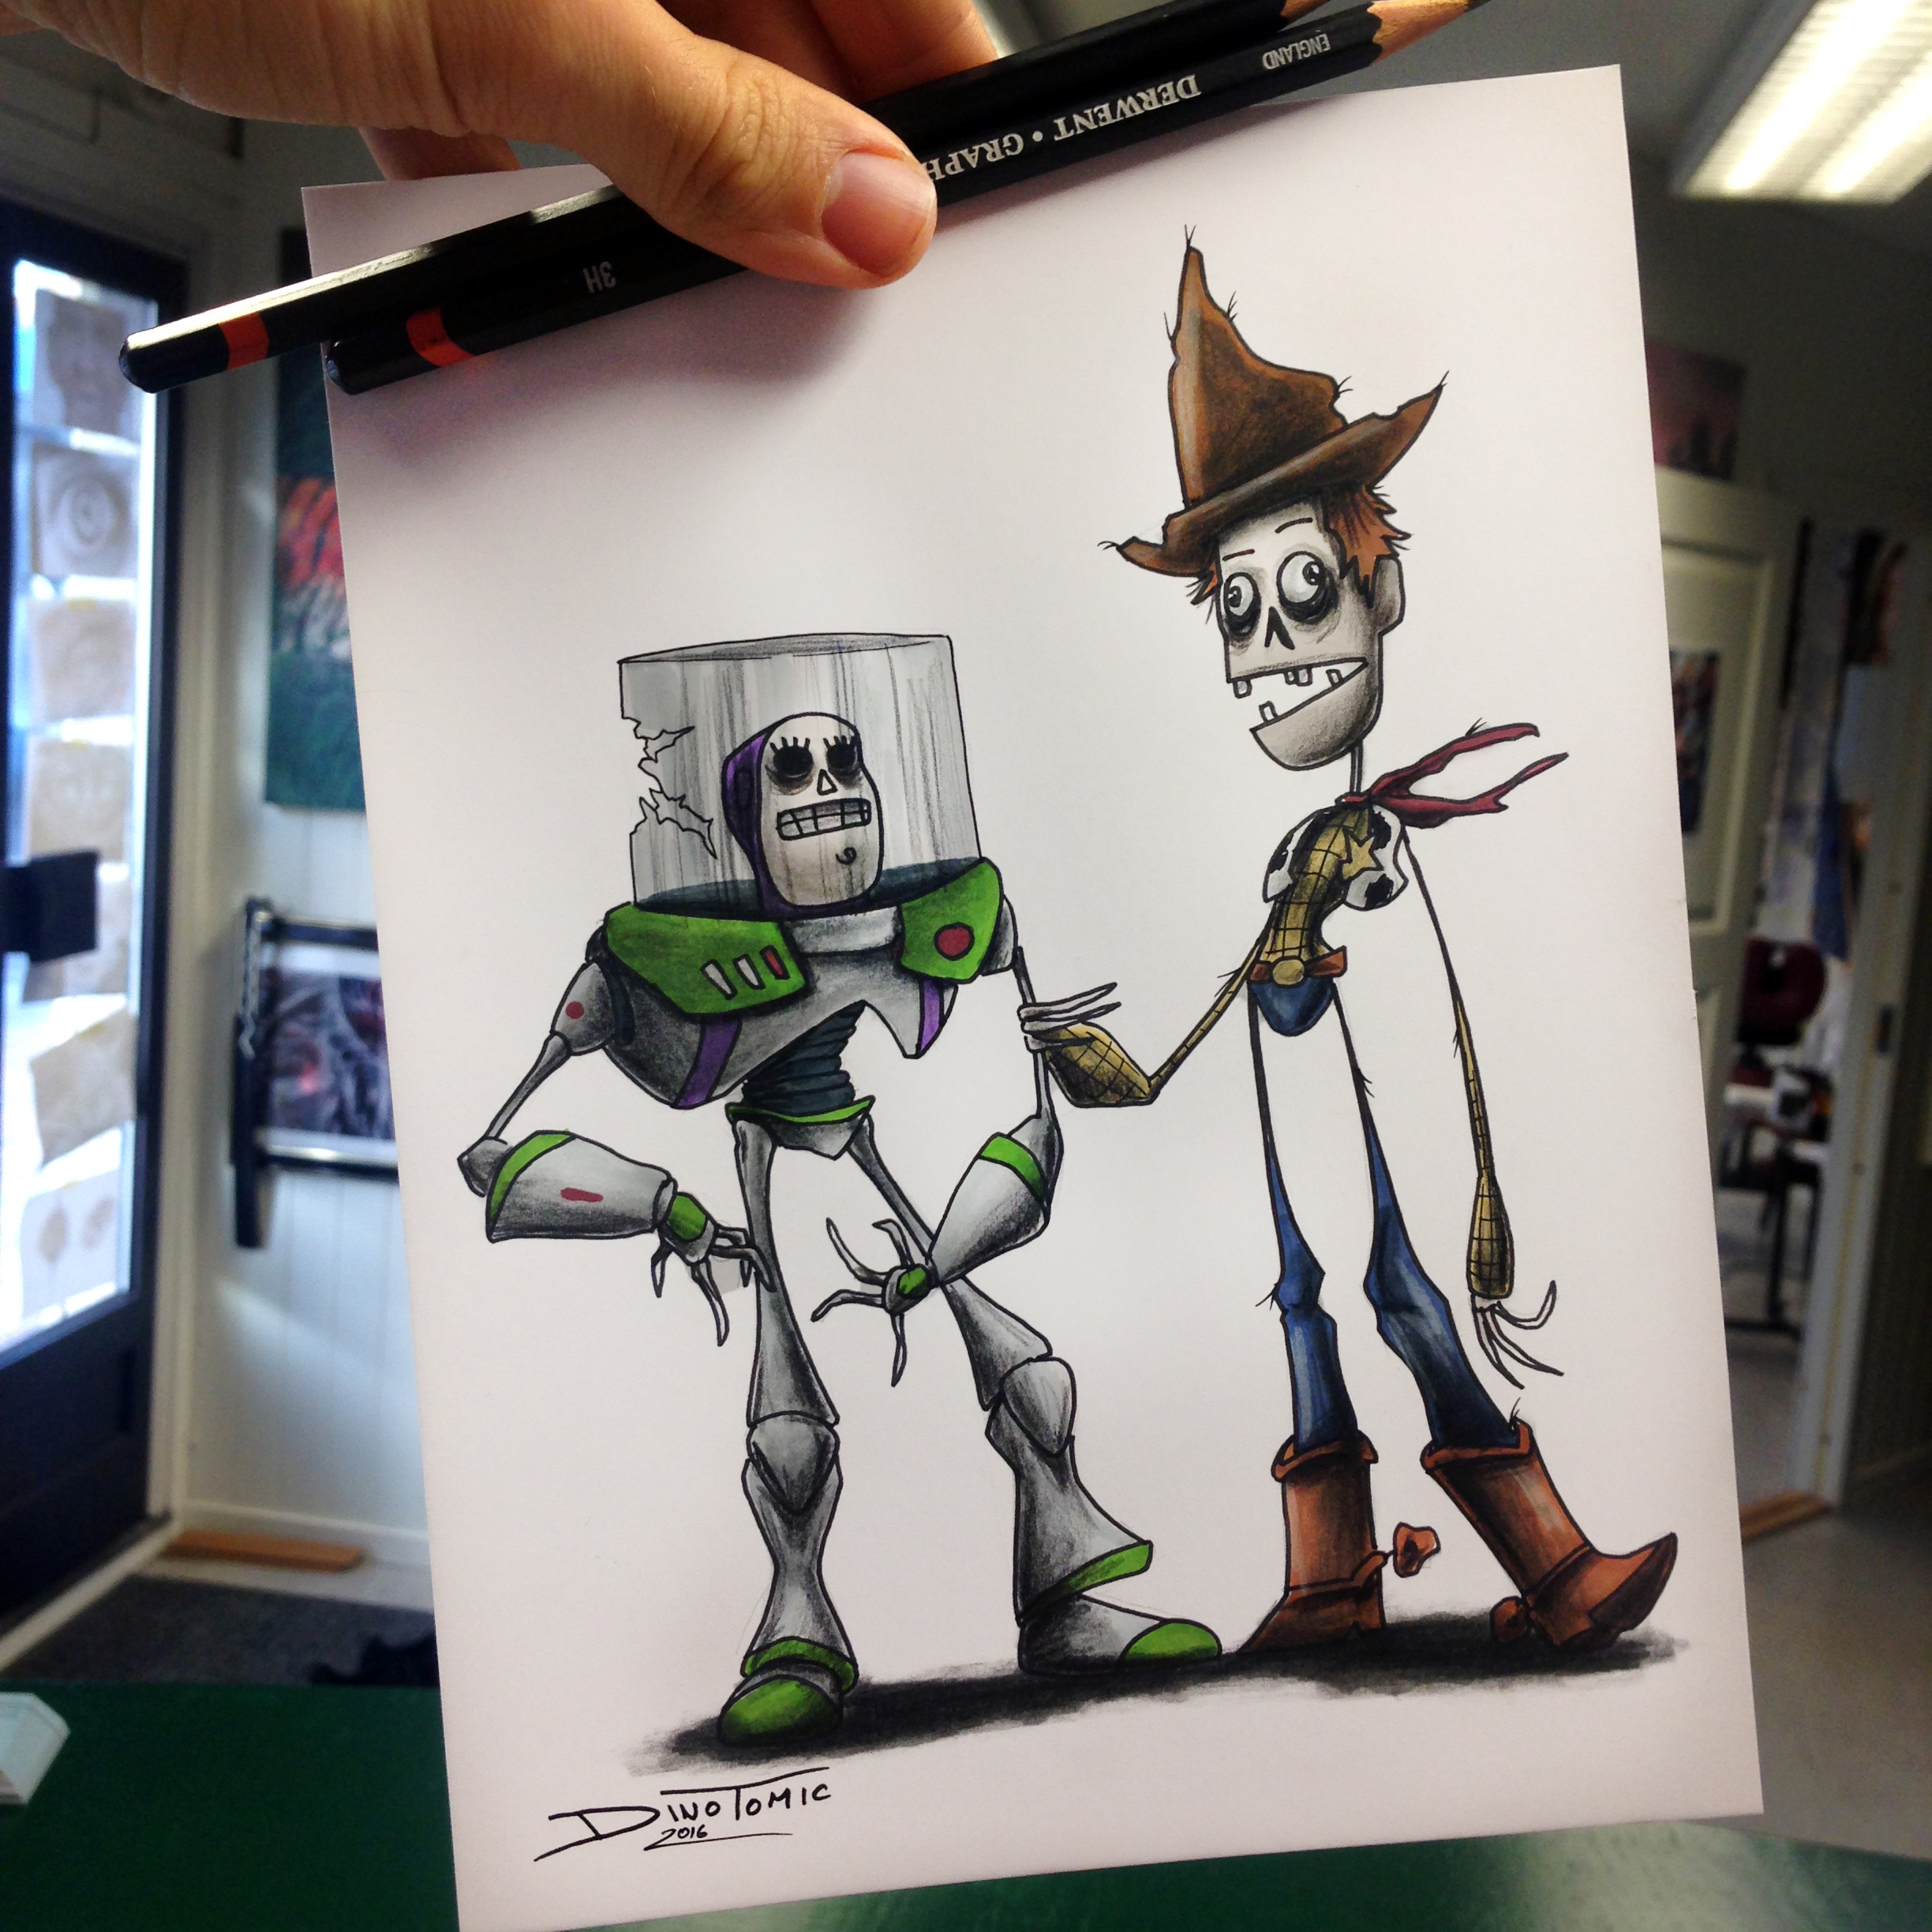 Buzz and Wood Creepyfied by AtomiccircuS on DeviantArt